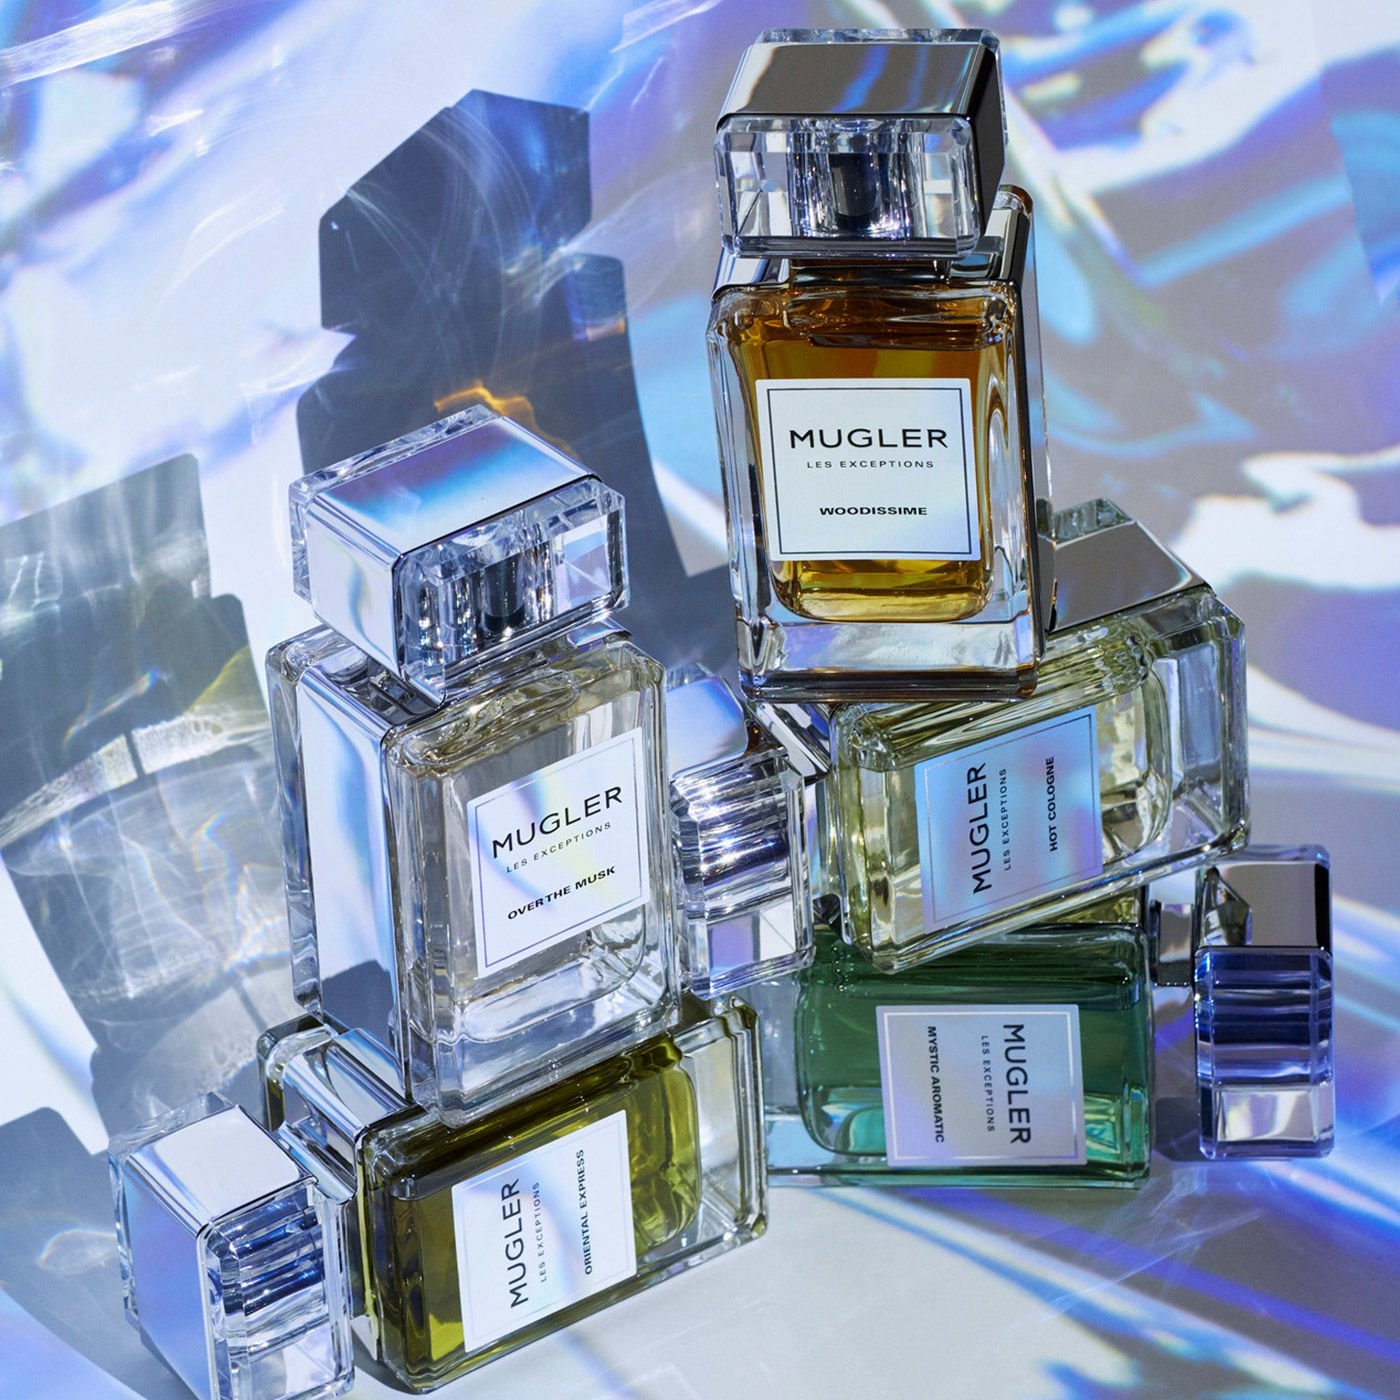 Les Exceptions flacons by Mugler